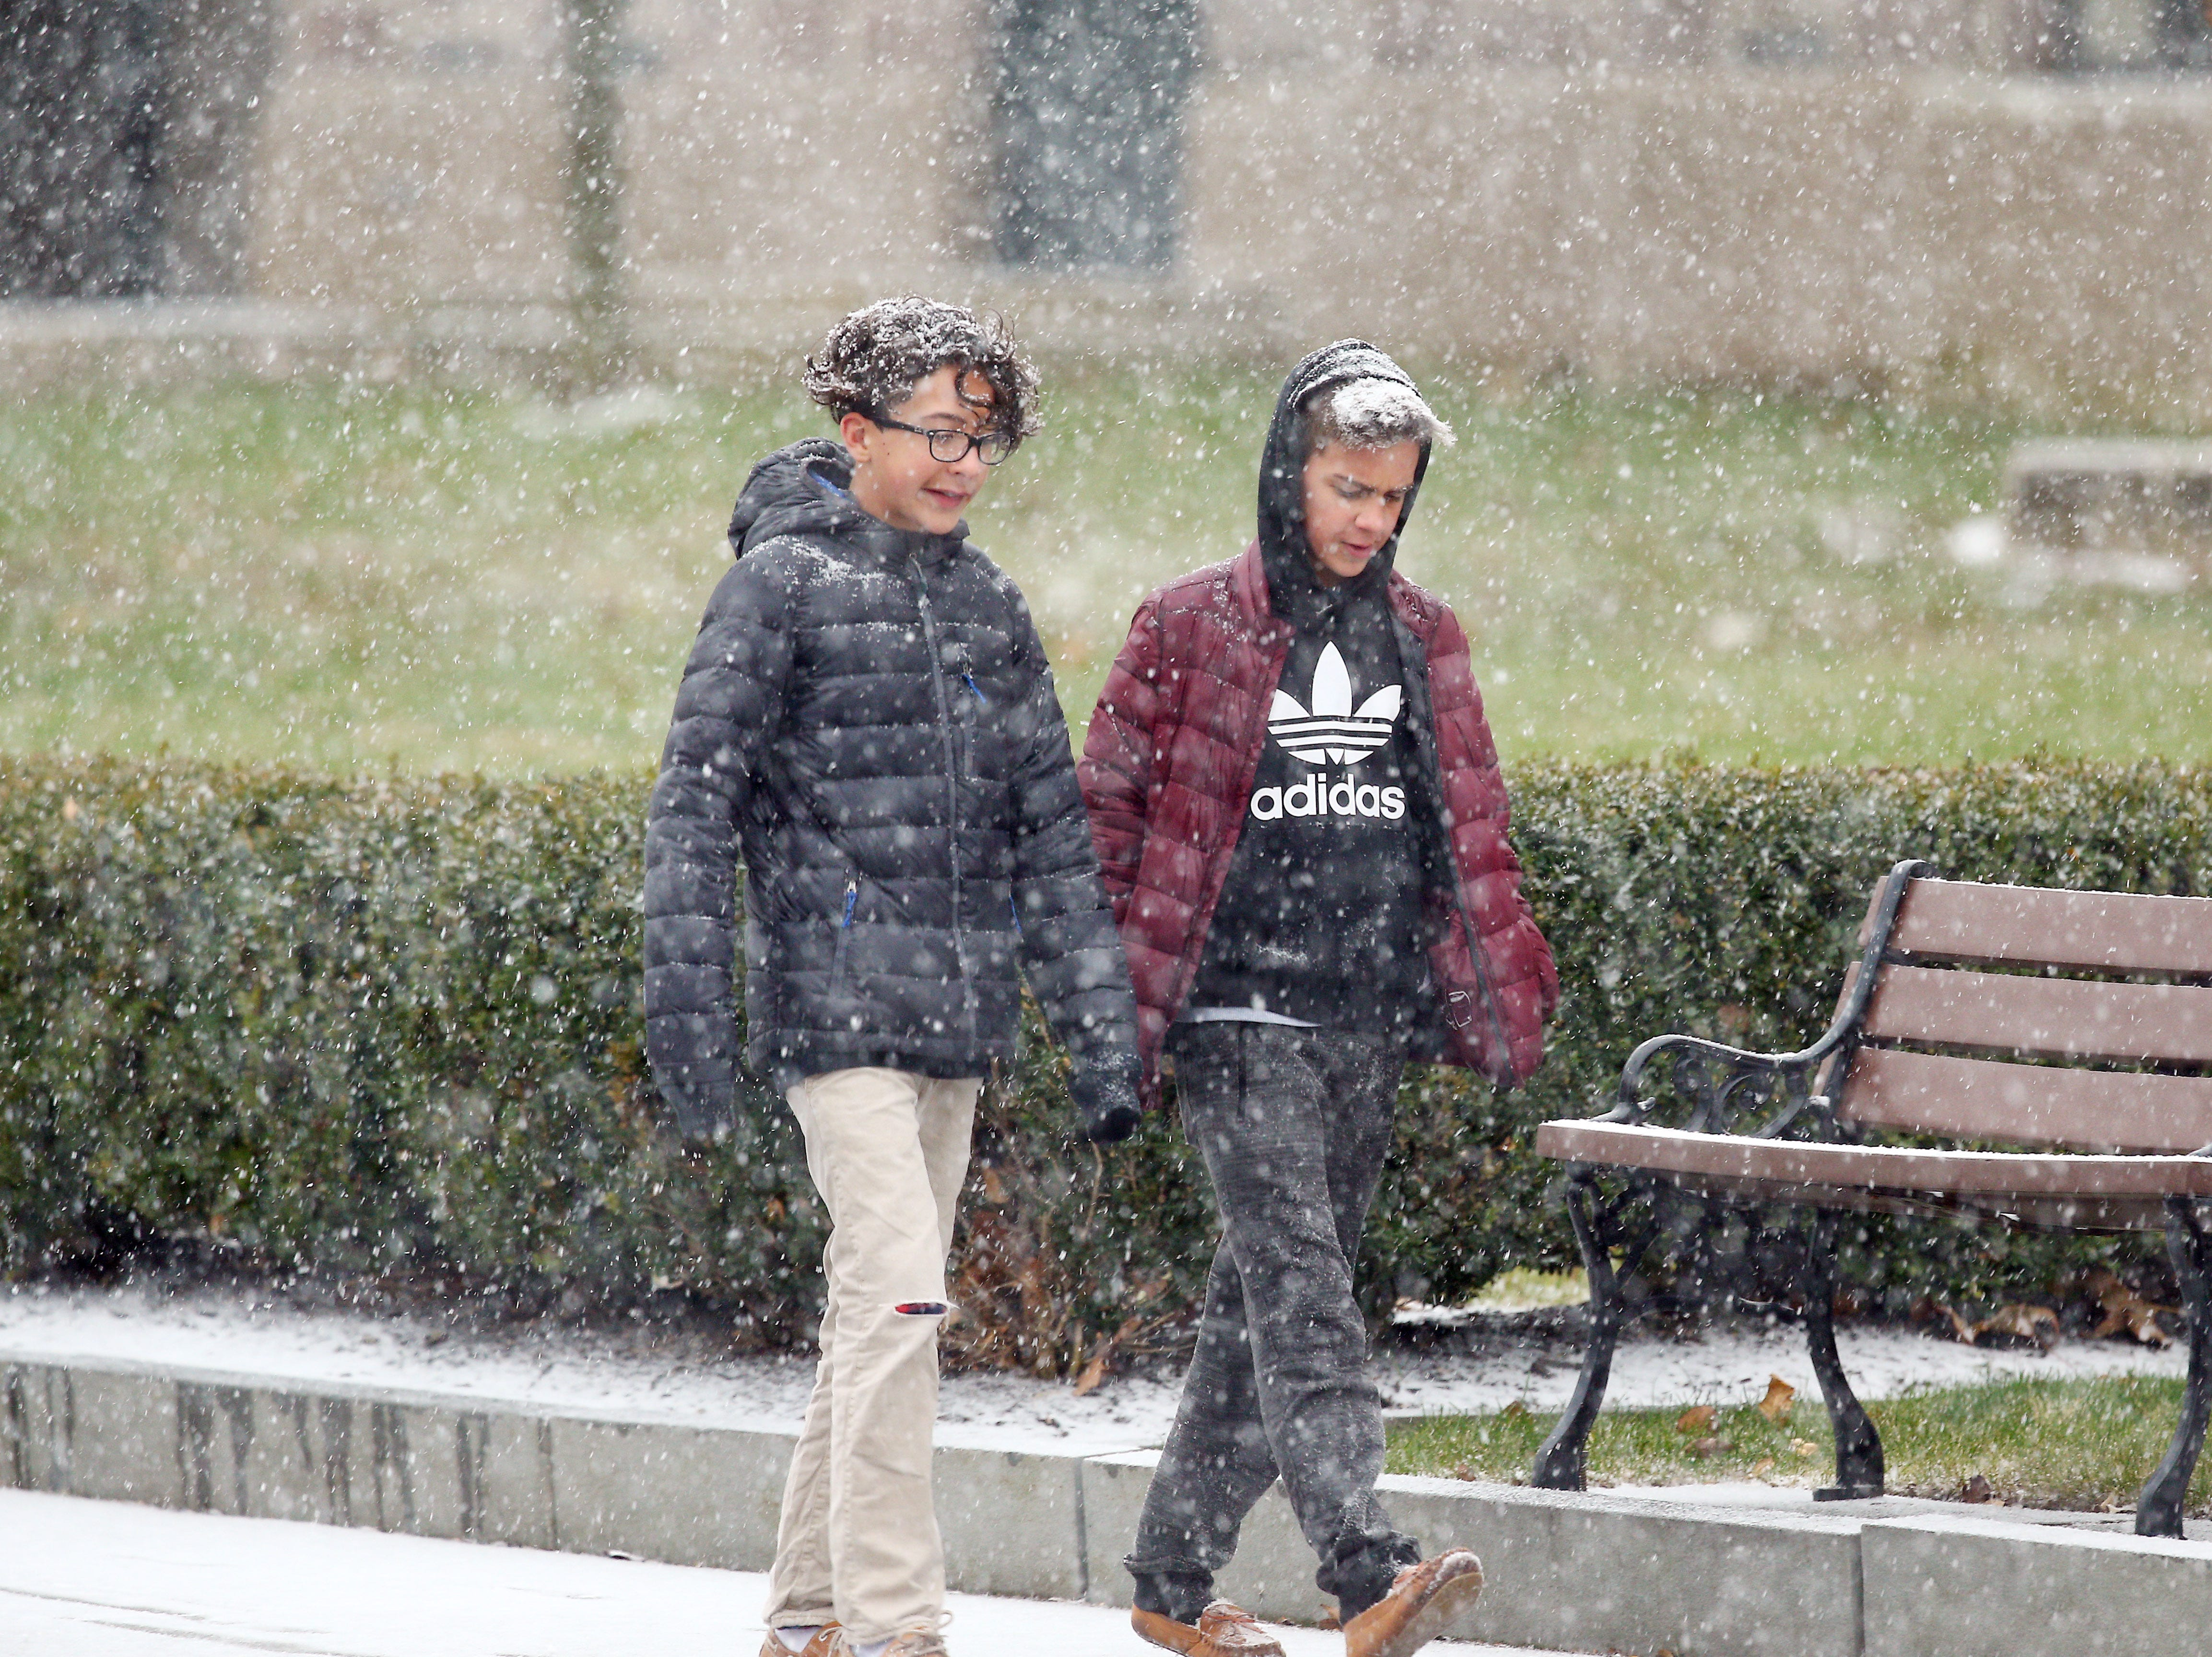 Pedestrians in Morristown navigate at the beginning of a predicted nor'easter, scheduled to dump over half a foot of snow and freezing rain on the area.  November 15, 2018, Morristown, NJ